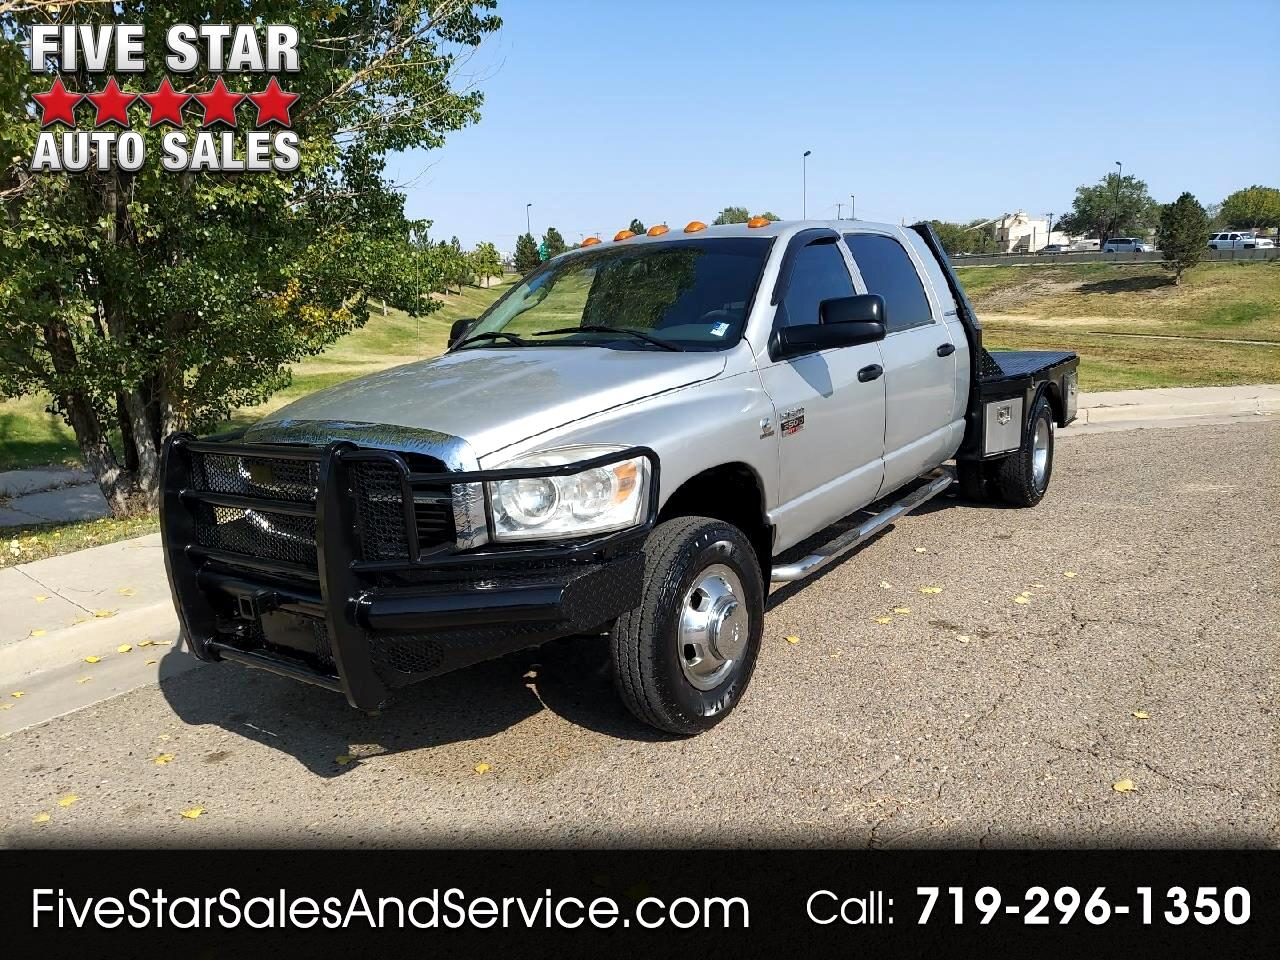 Used 2007 Dodge Ram 3500 Slt Mega Cab 4x4 5 9l Diesel Dually Flatbed For Sale In Pueblo Co 81008 Five Star Auto Sales